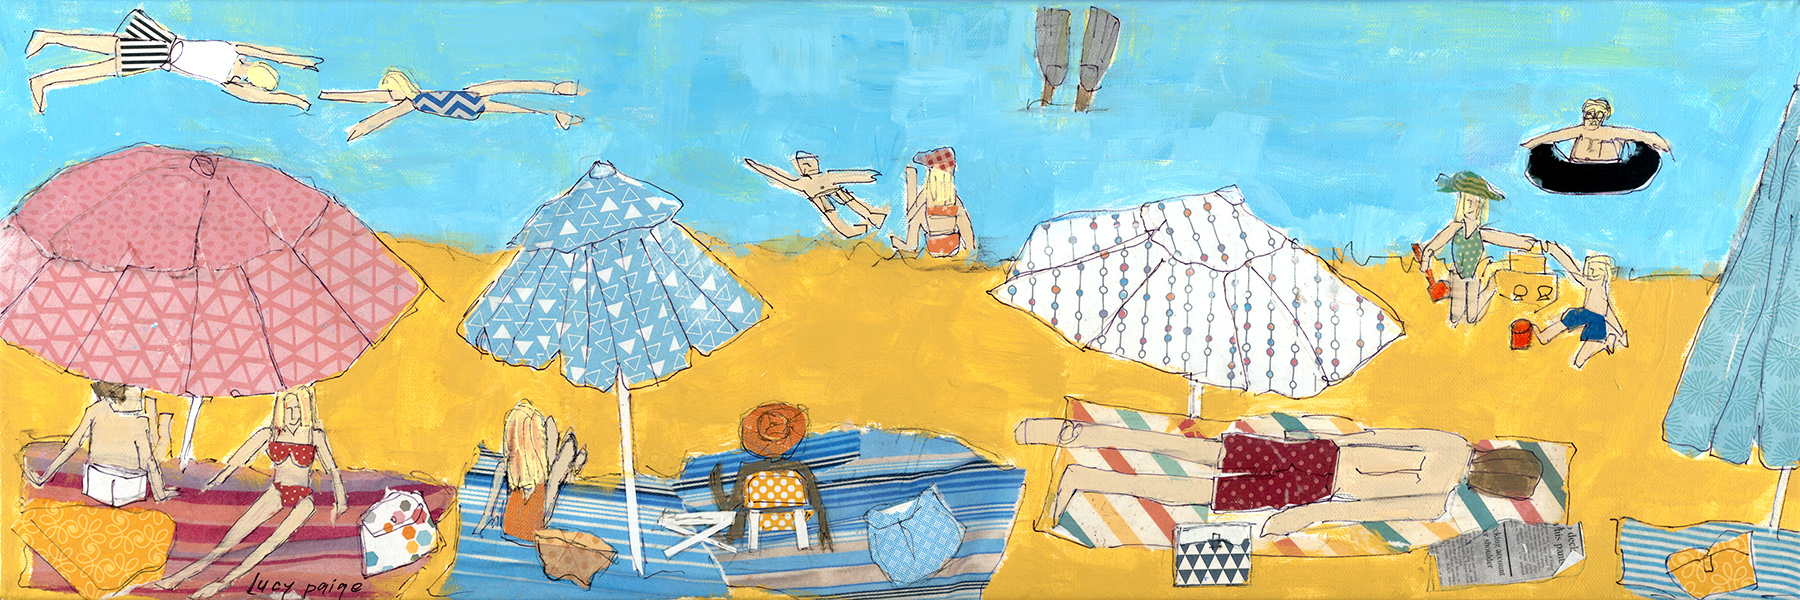 lucy paige artist key west beach day series collage Long Day at the Beach .jpg